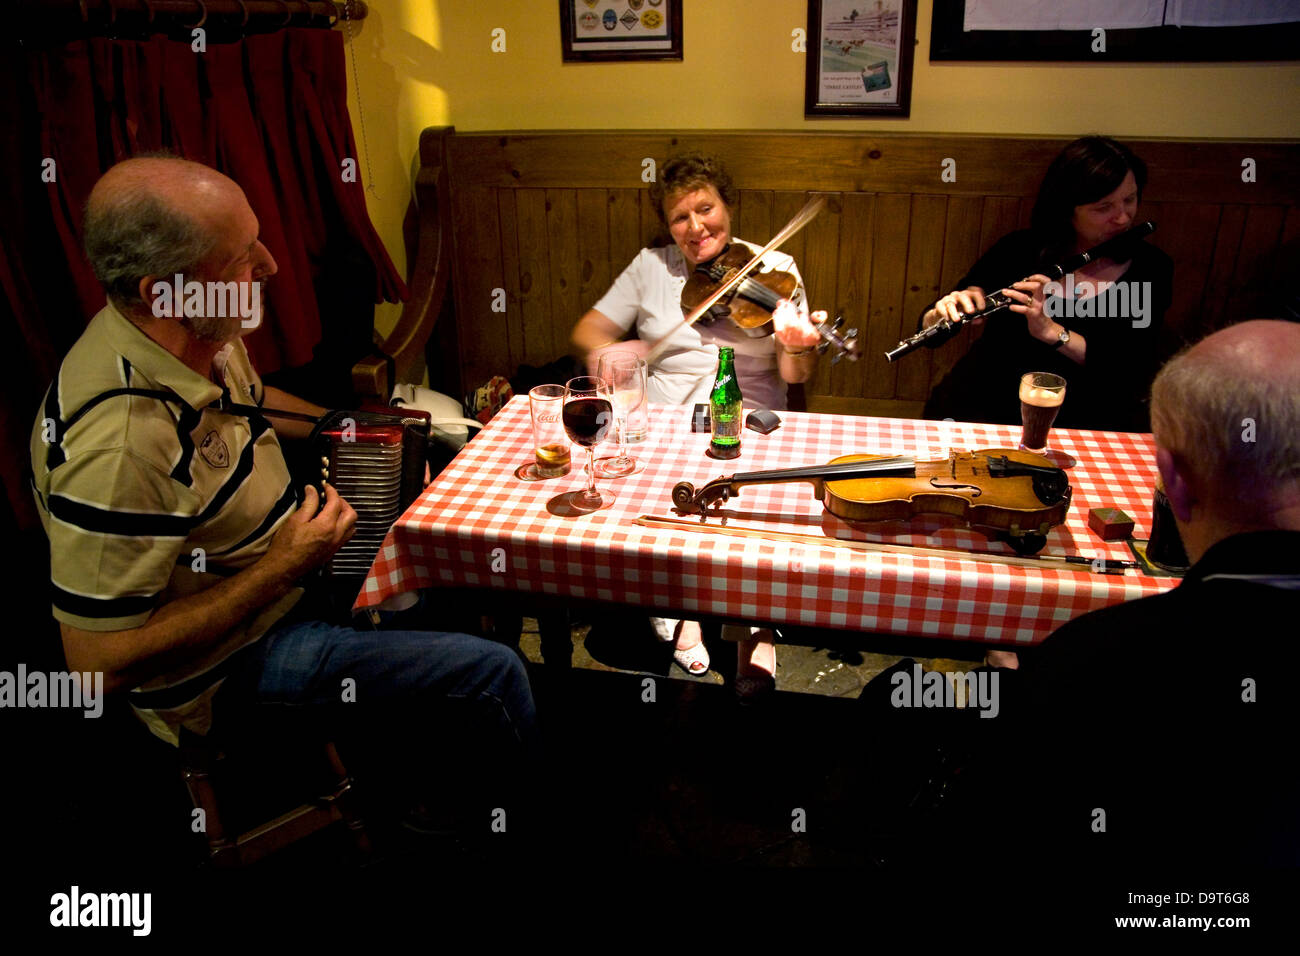 traditional music. - Stock Image